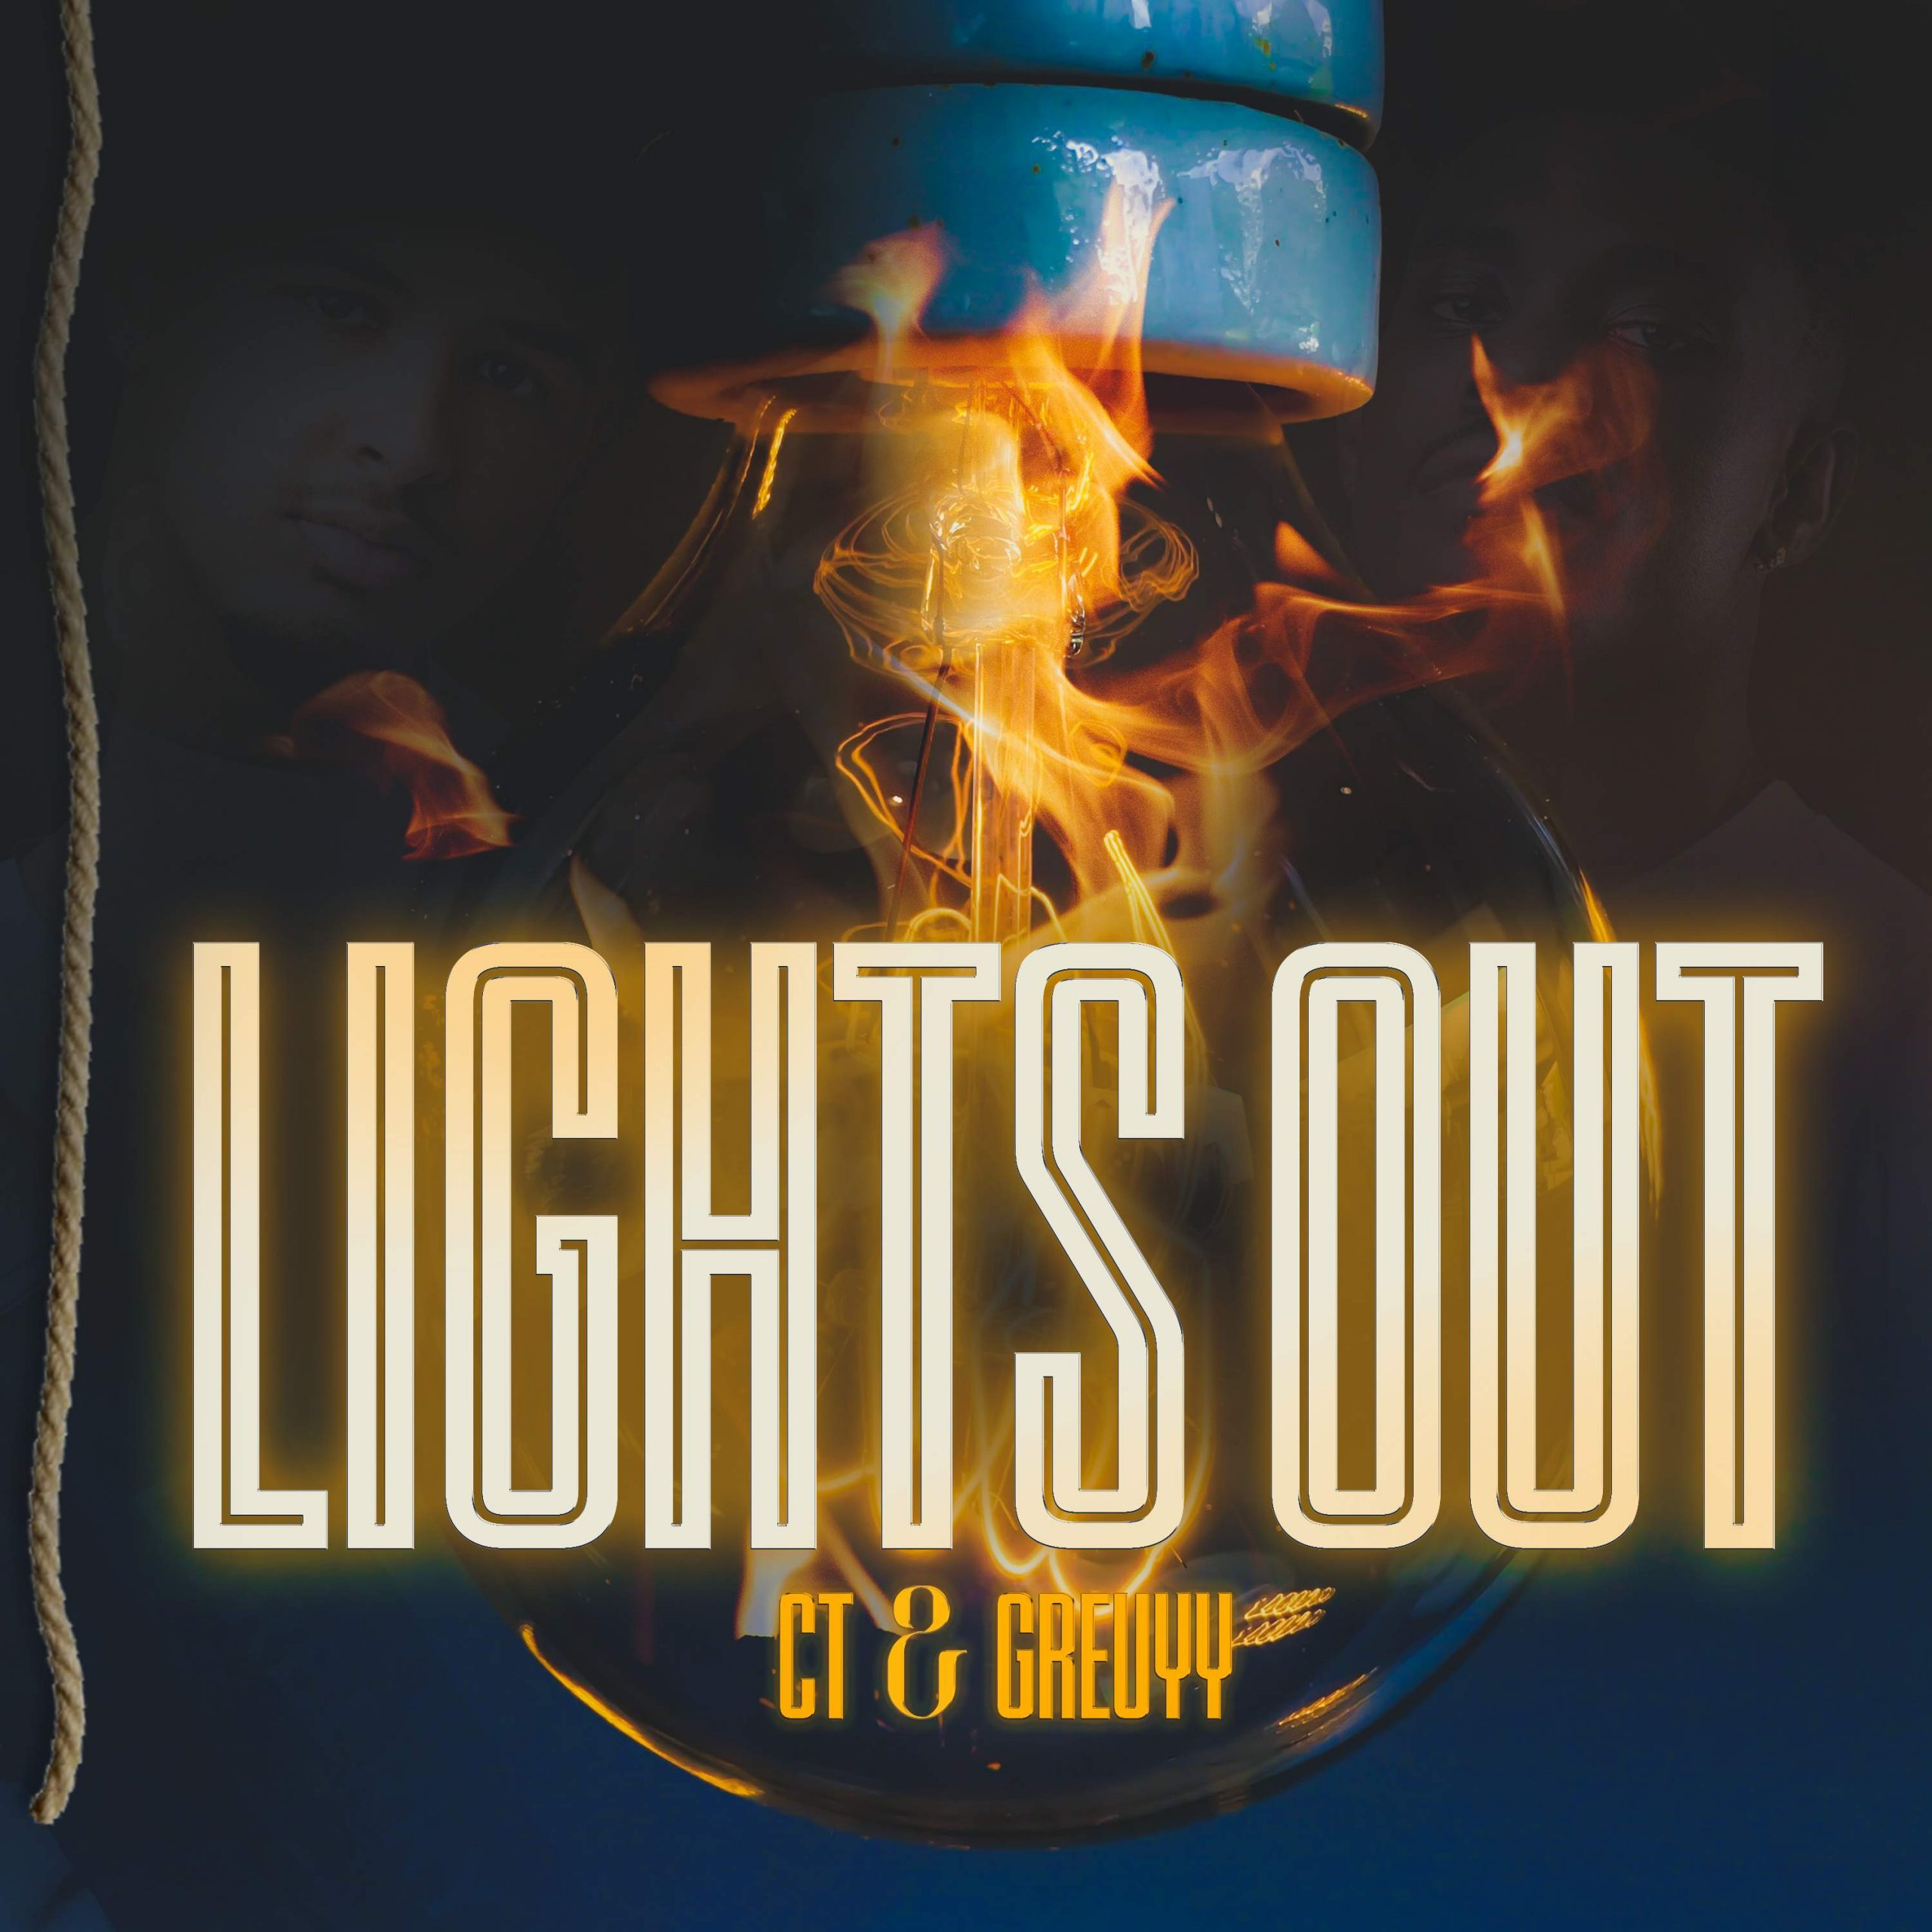 CT & GREUYY - Lights Out